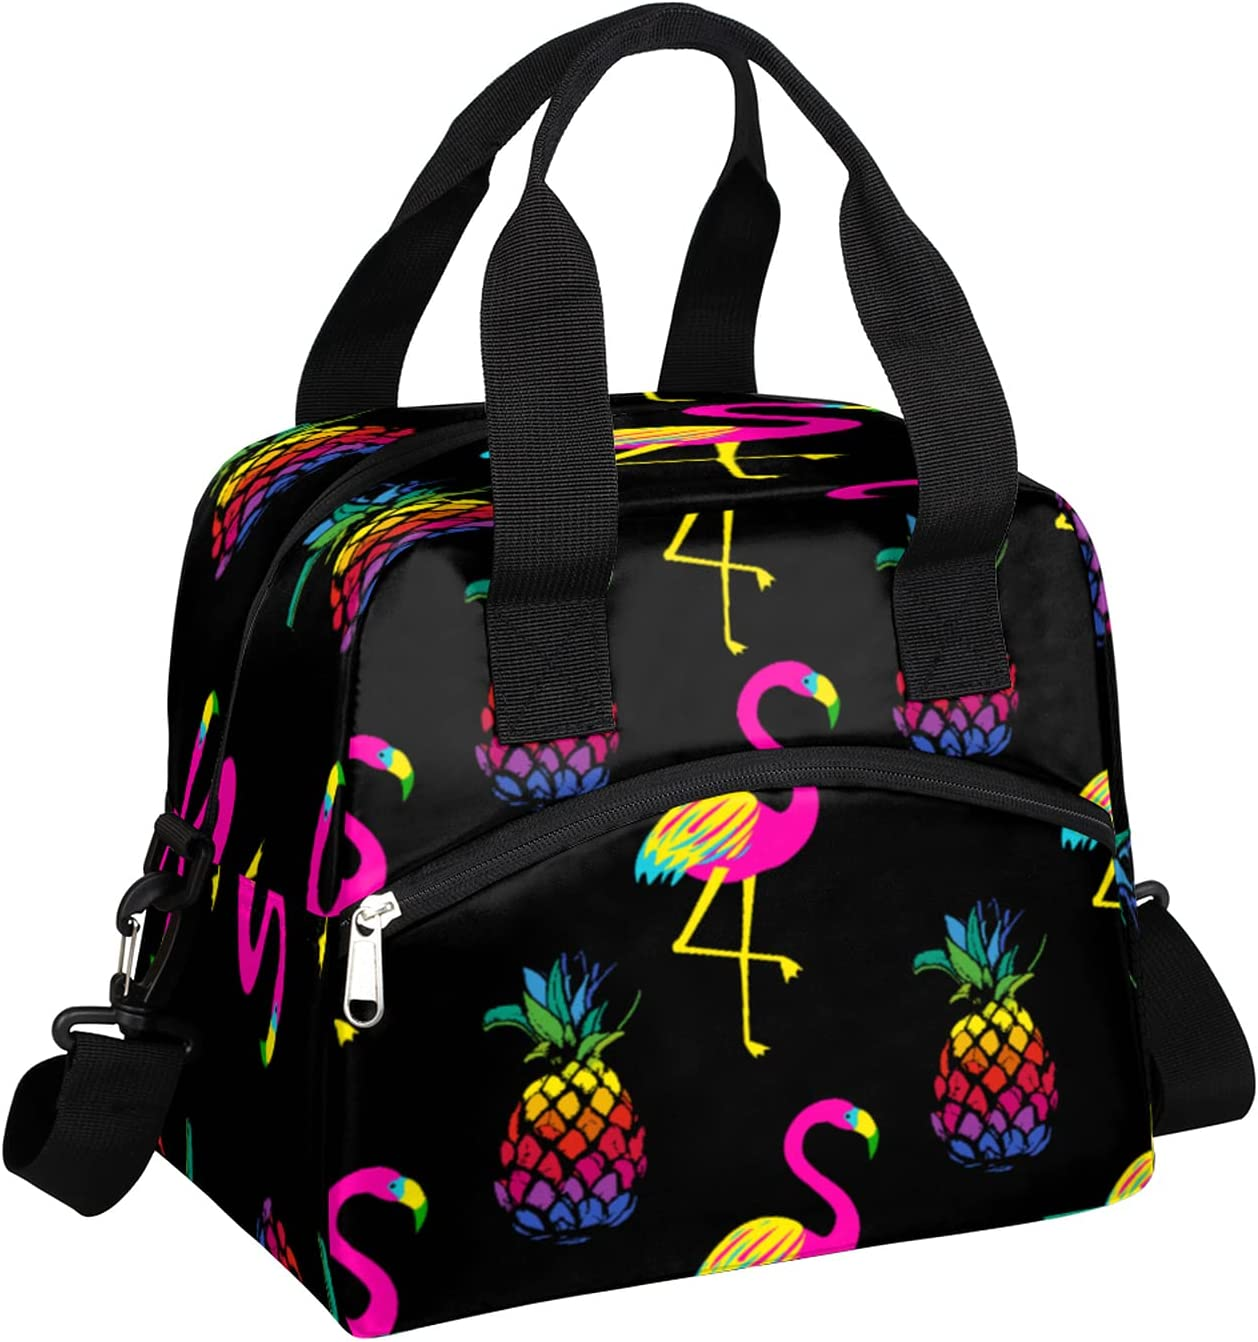 Insulated Lunch Portland Mall Bag for Women Men Pineapple Fruit - Le Flamingo Max 90% OFF